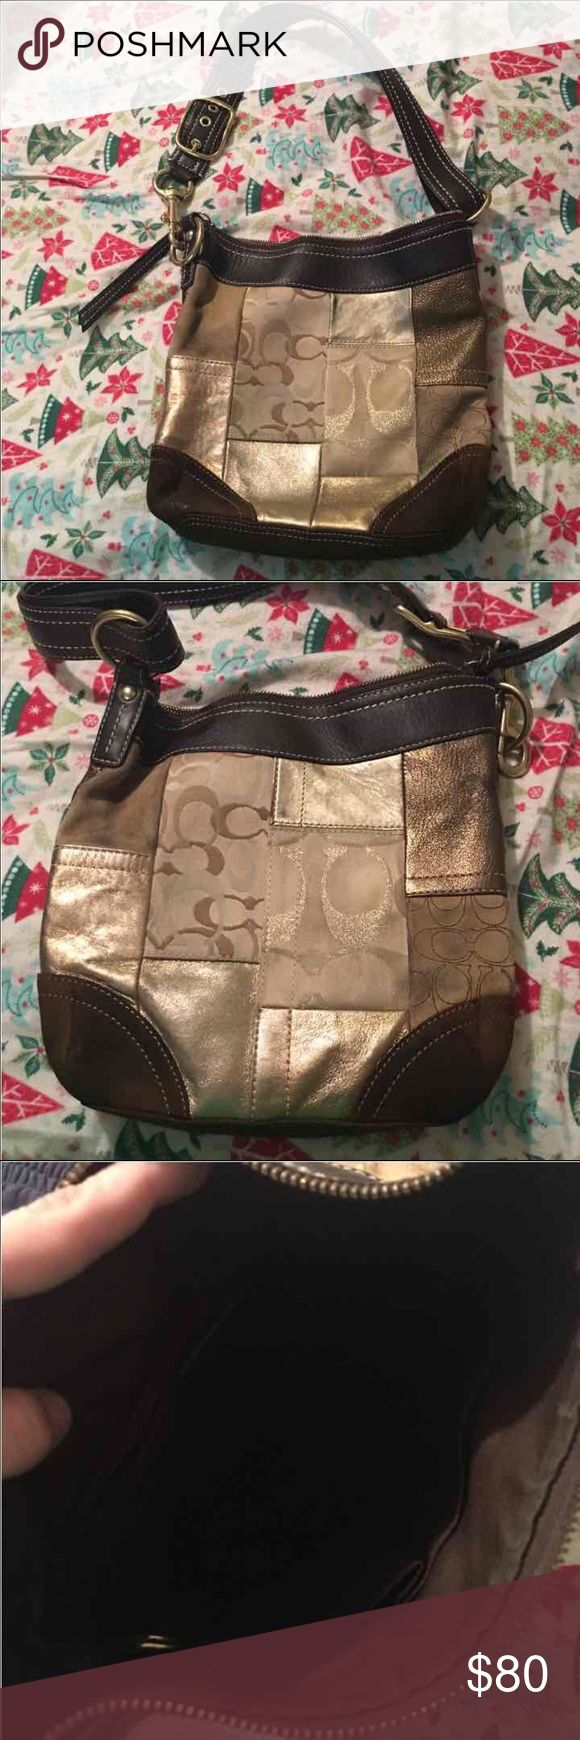 Coach purse with gold patchwork Gold hardware  SO CUTE!!! pre used condition!  I am in love with the patch work.  Could use a cleaning but no stains or tears  100% authentic NEEDS A GOOD CLEANING!! Coach Bags Shoulder Bags